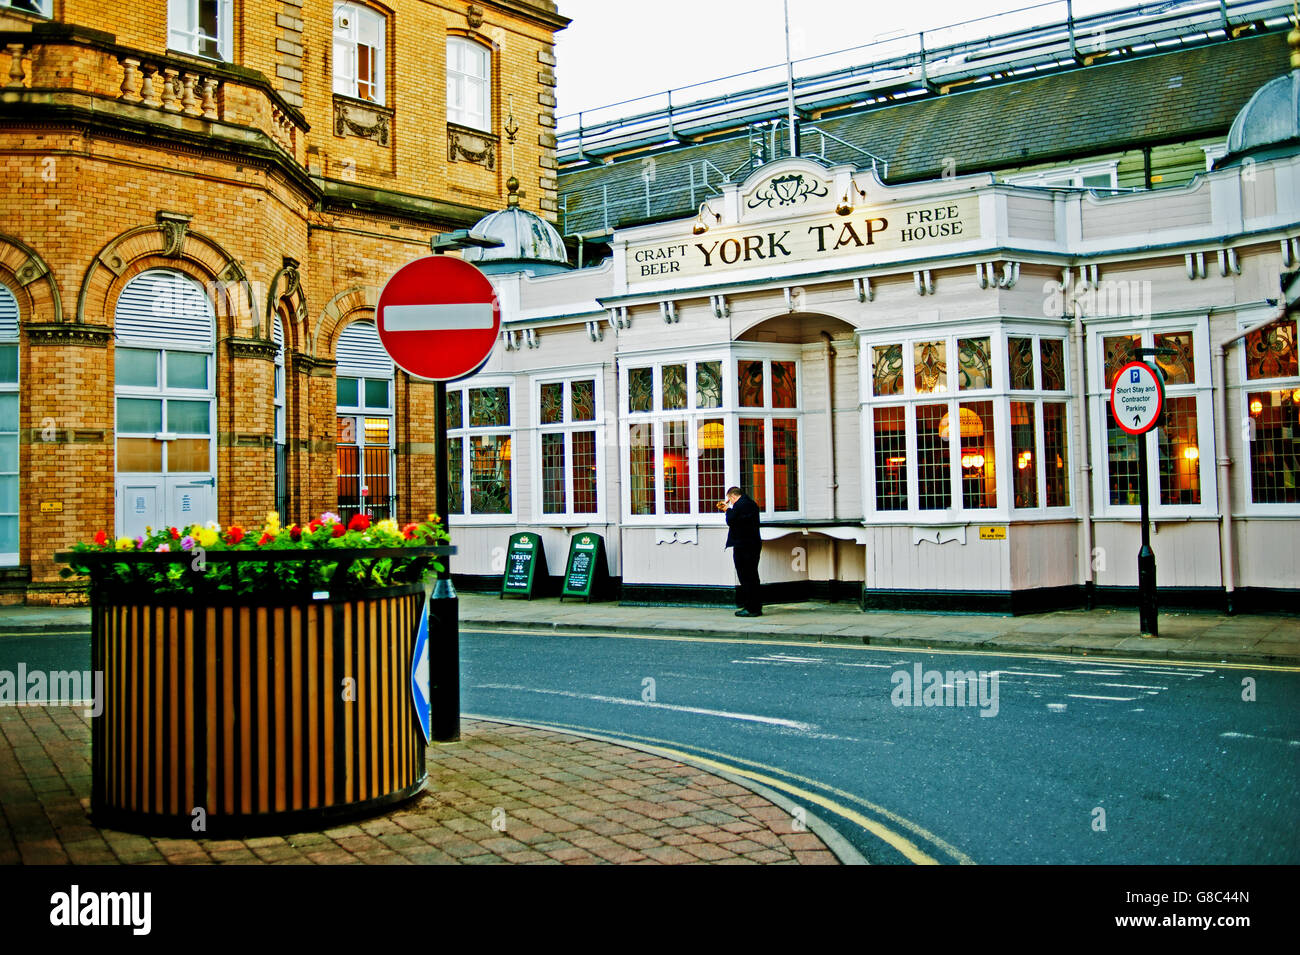 York Tap public house, York - Stock Image